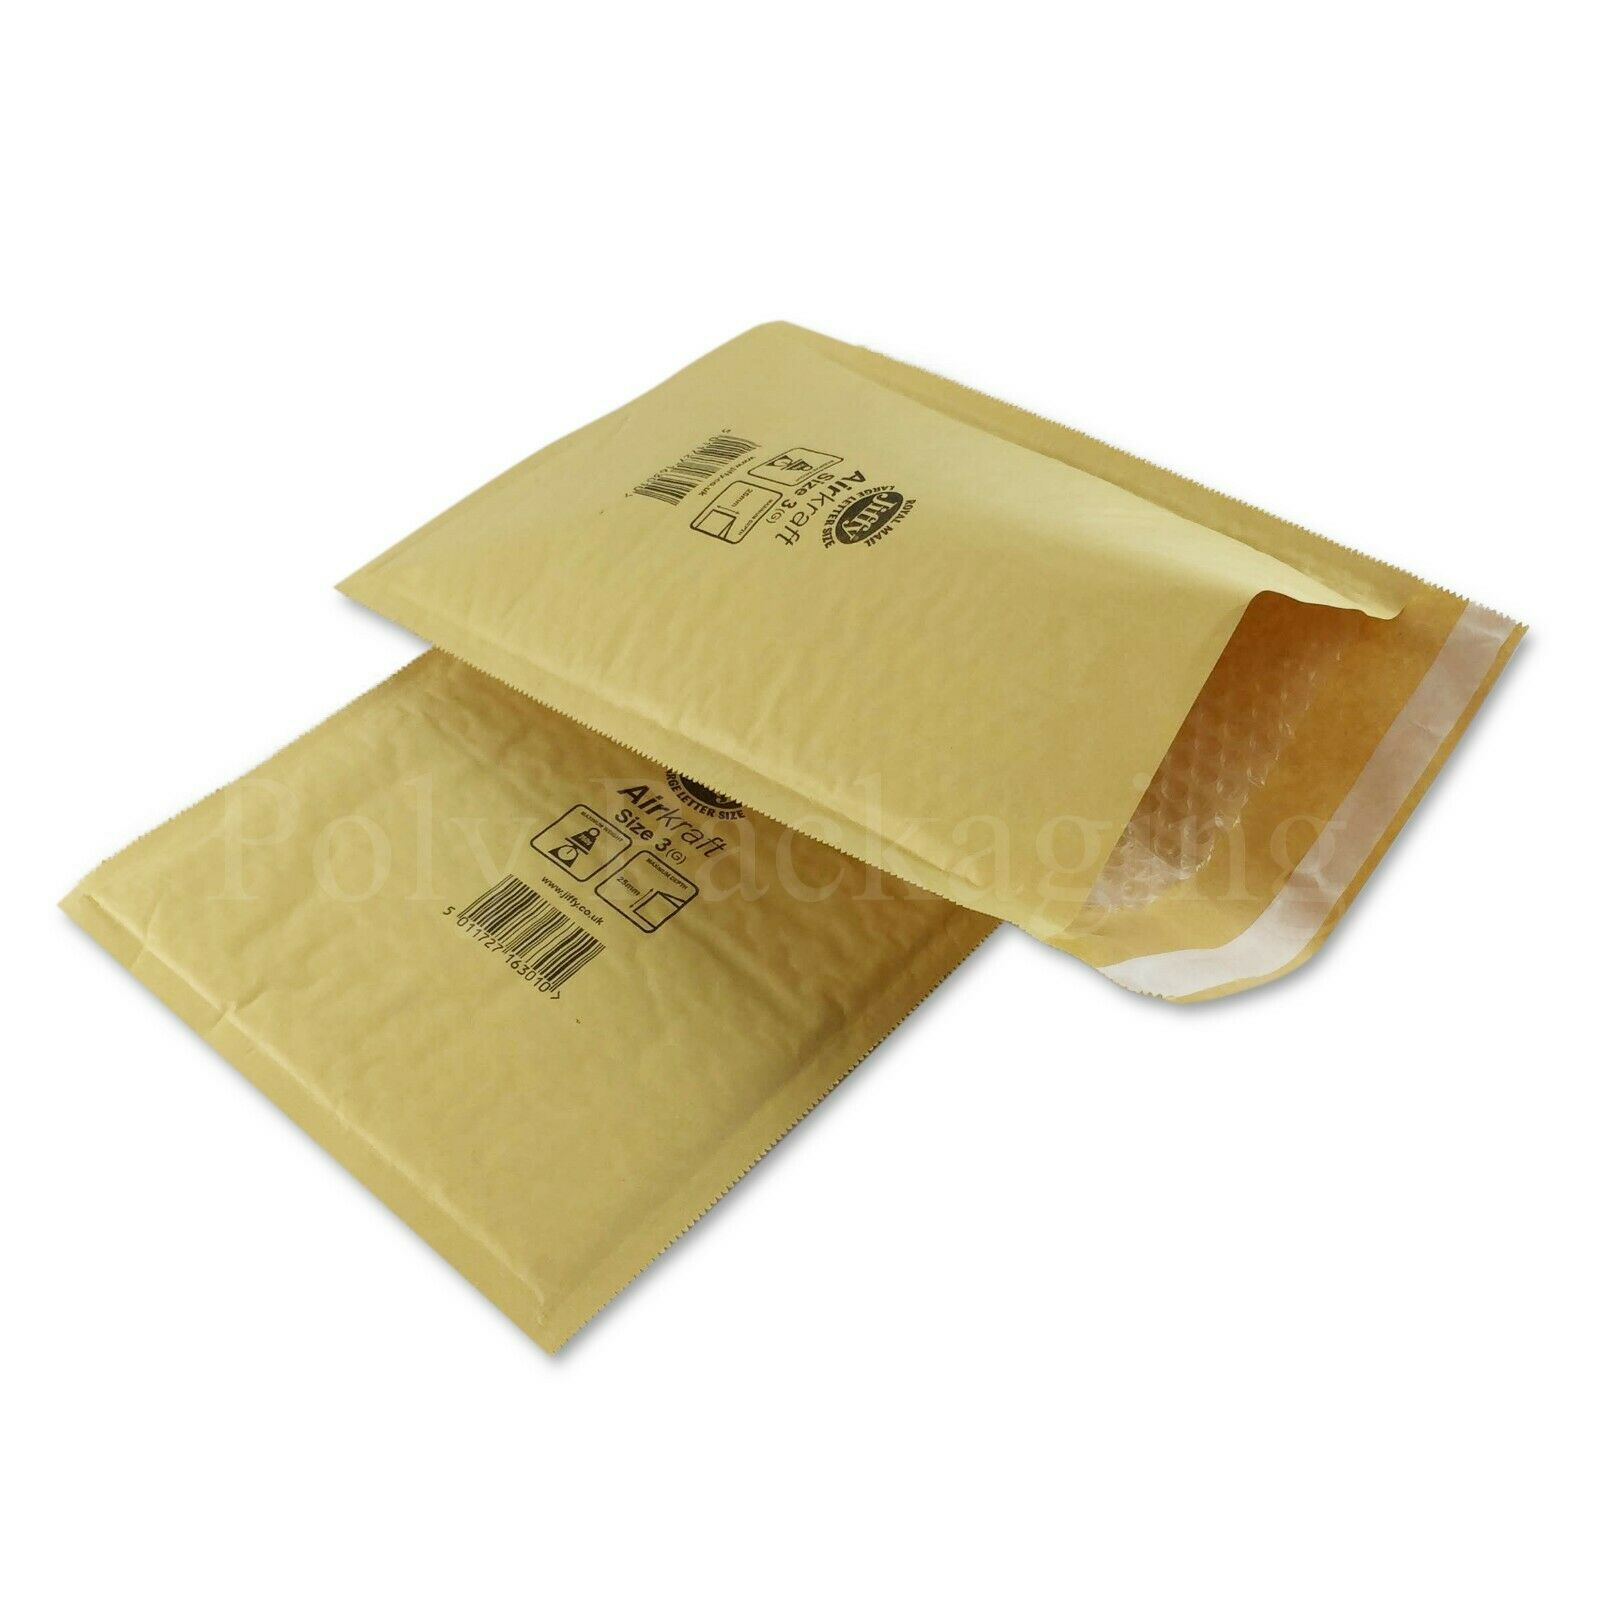 JIFFY gold ENVELOPES 220x320mm(Size 3)Padded Mailing Bags Small Parcel Any Qty